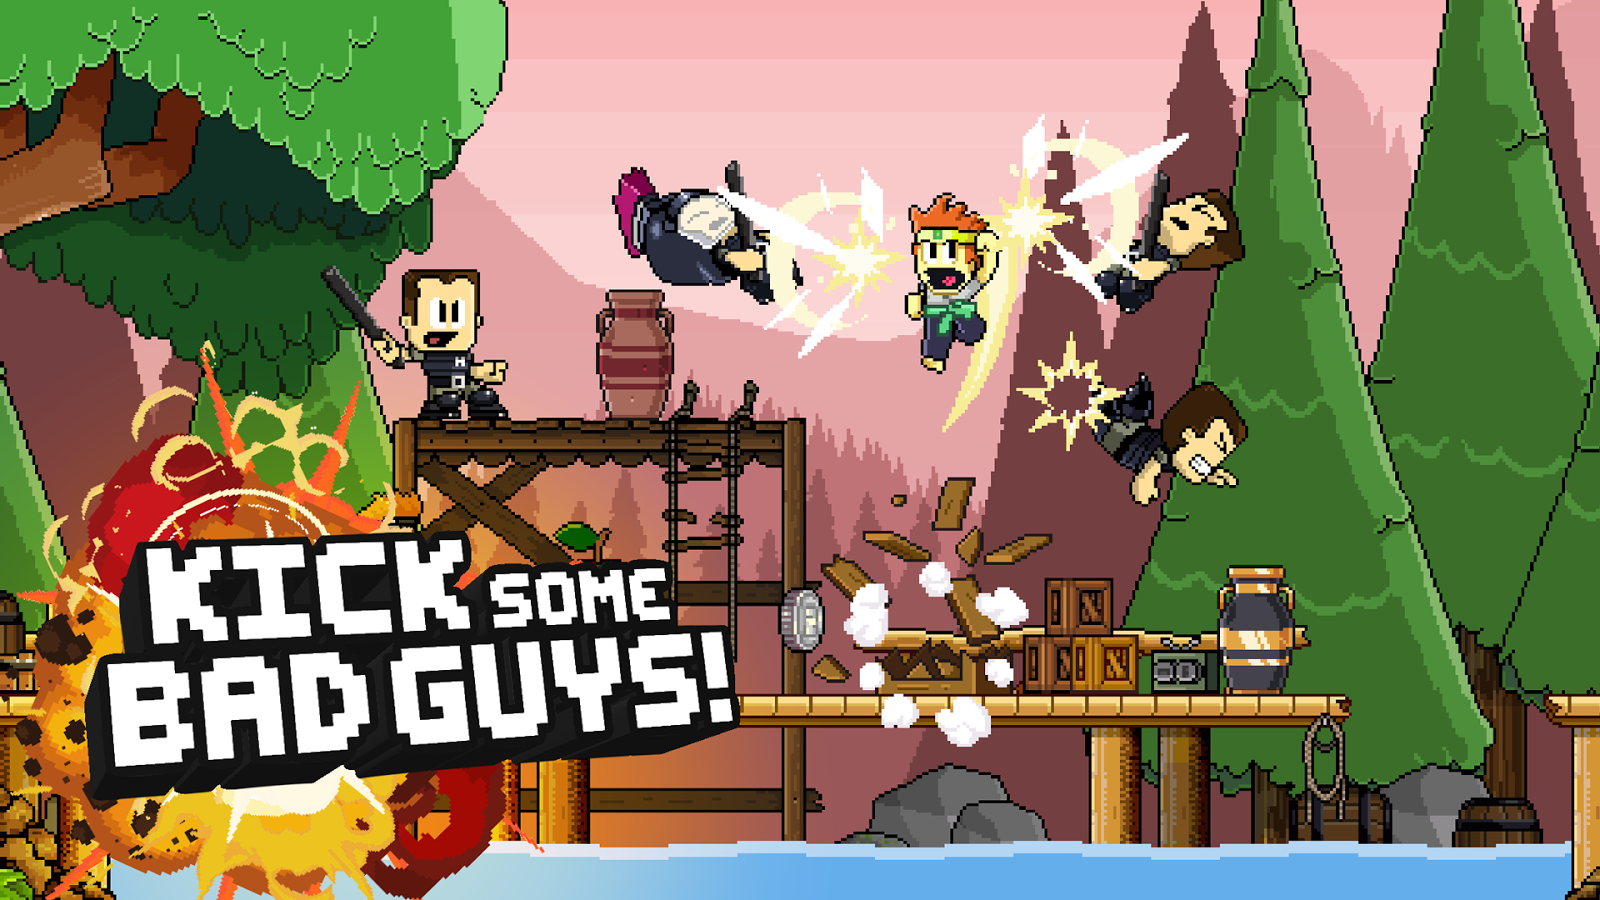 dan the man action platformer android apps on google play